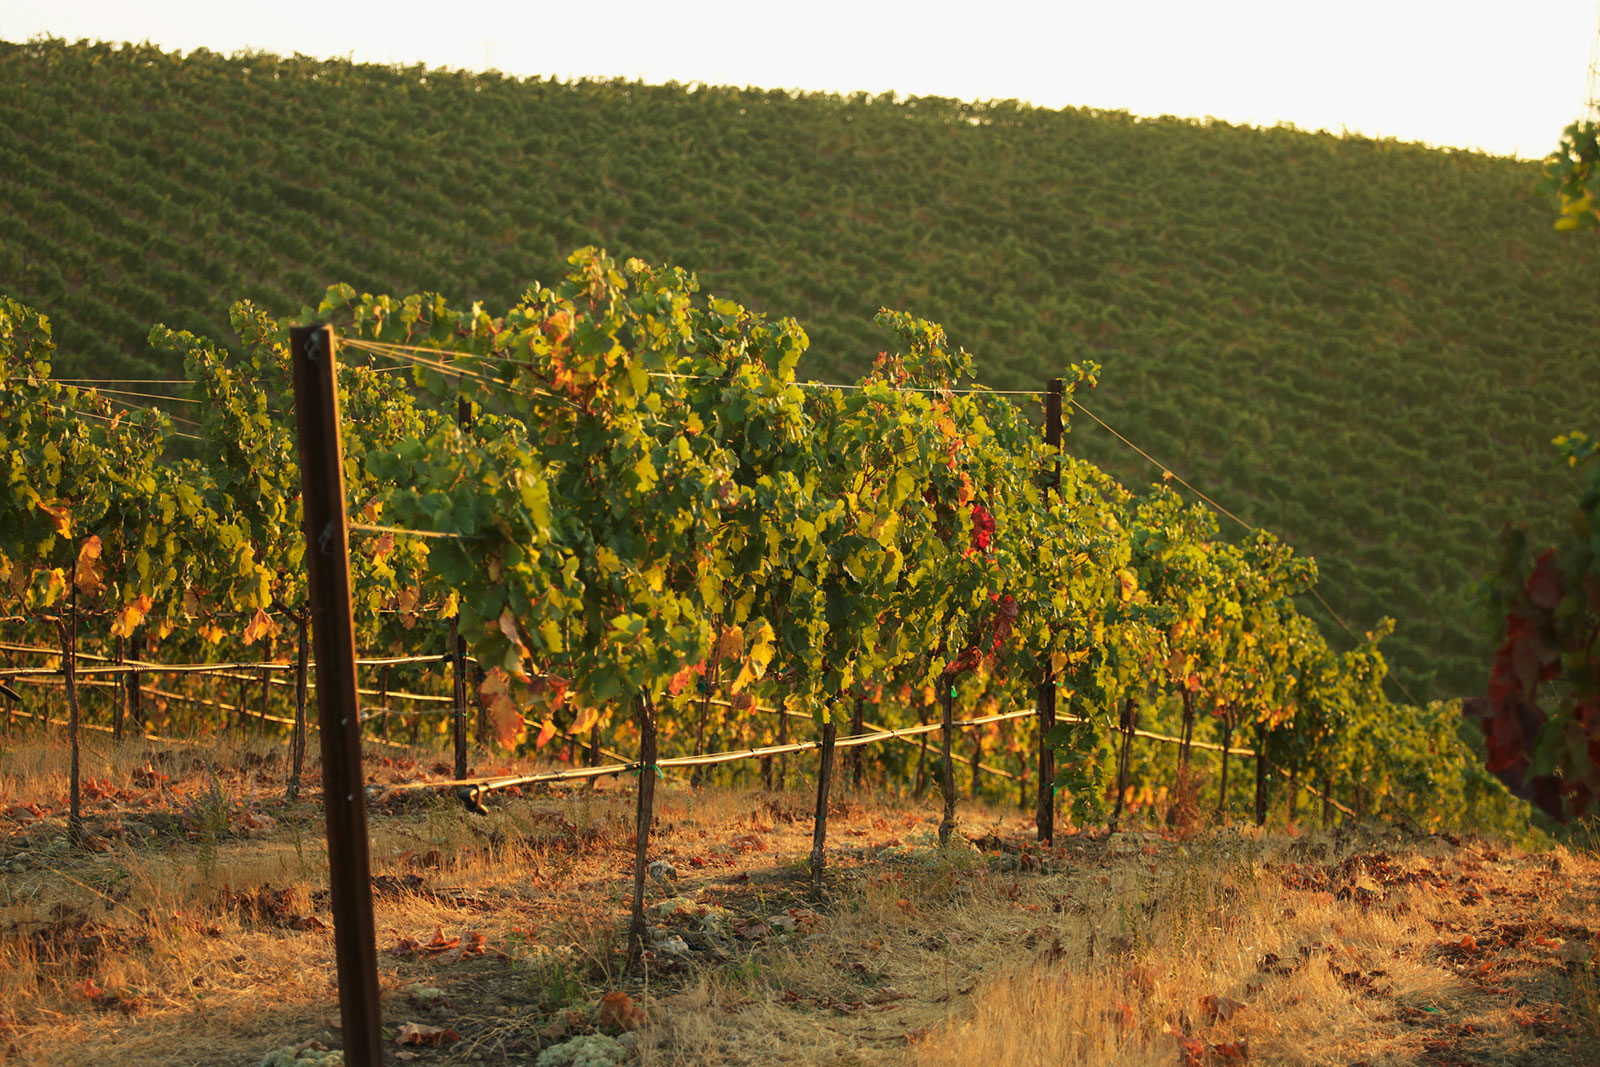 The estate vineyard at Murrieta's Well in Livermore, California. ©Murrieta's Well / All rights reserved